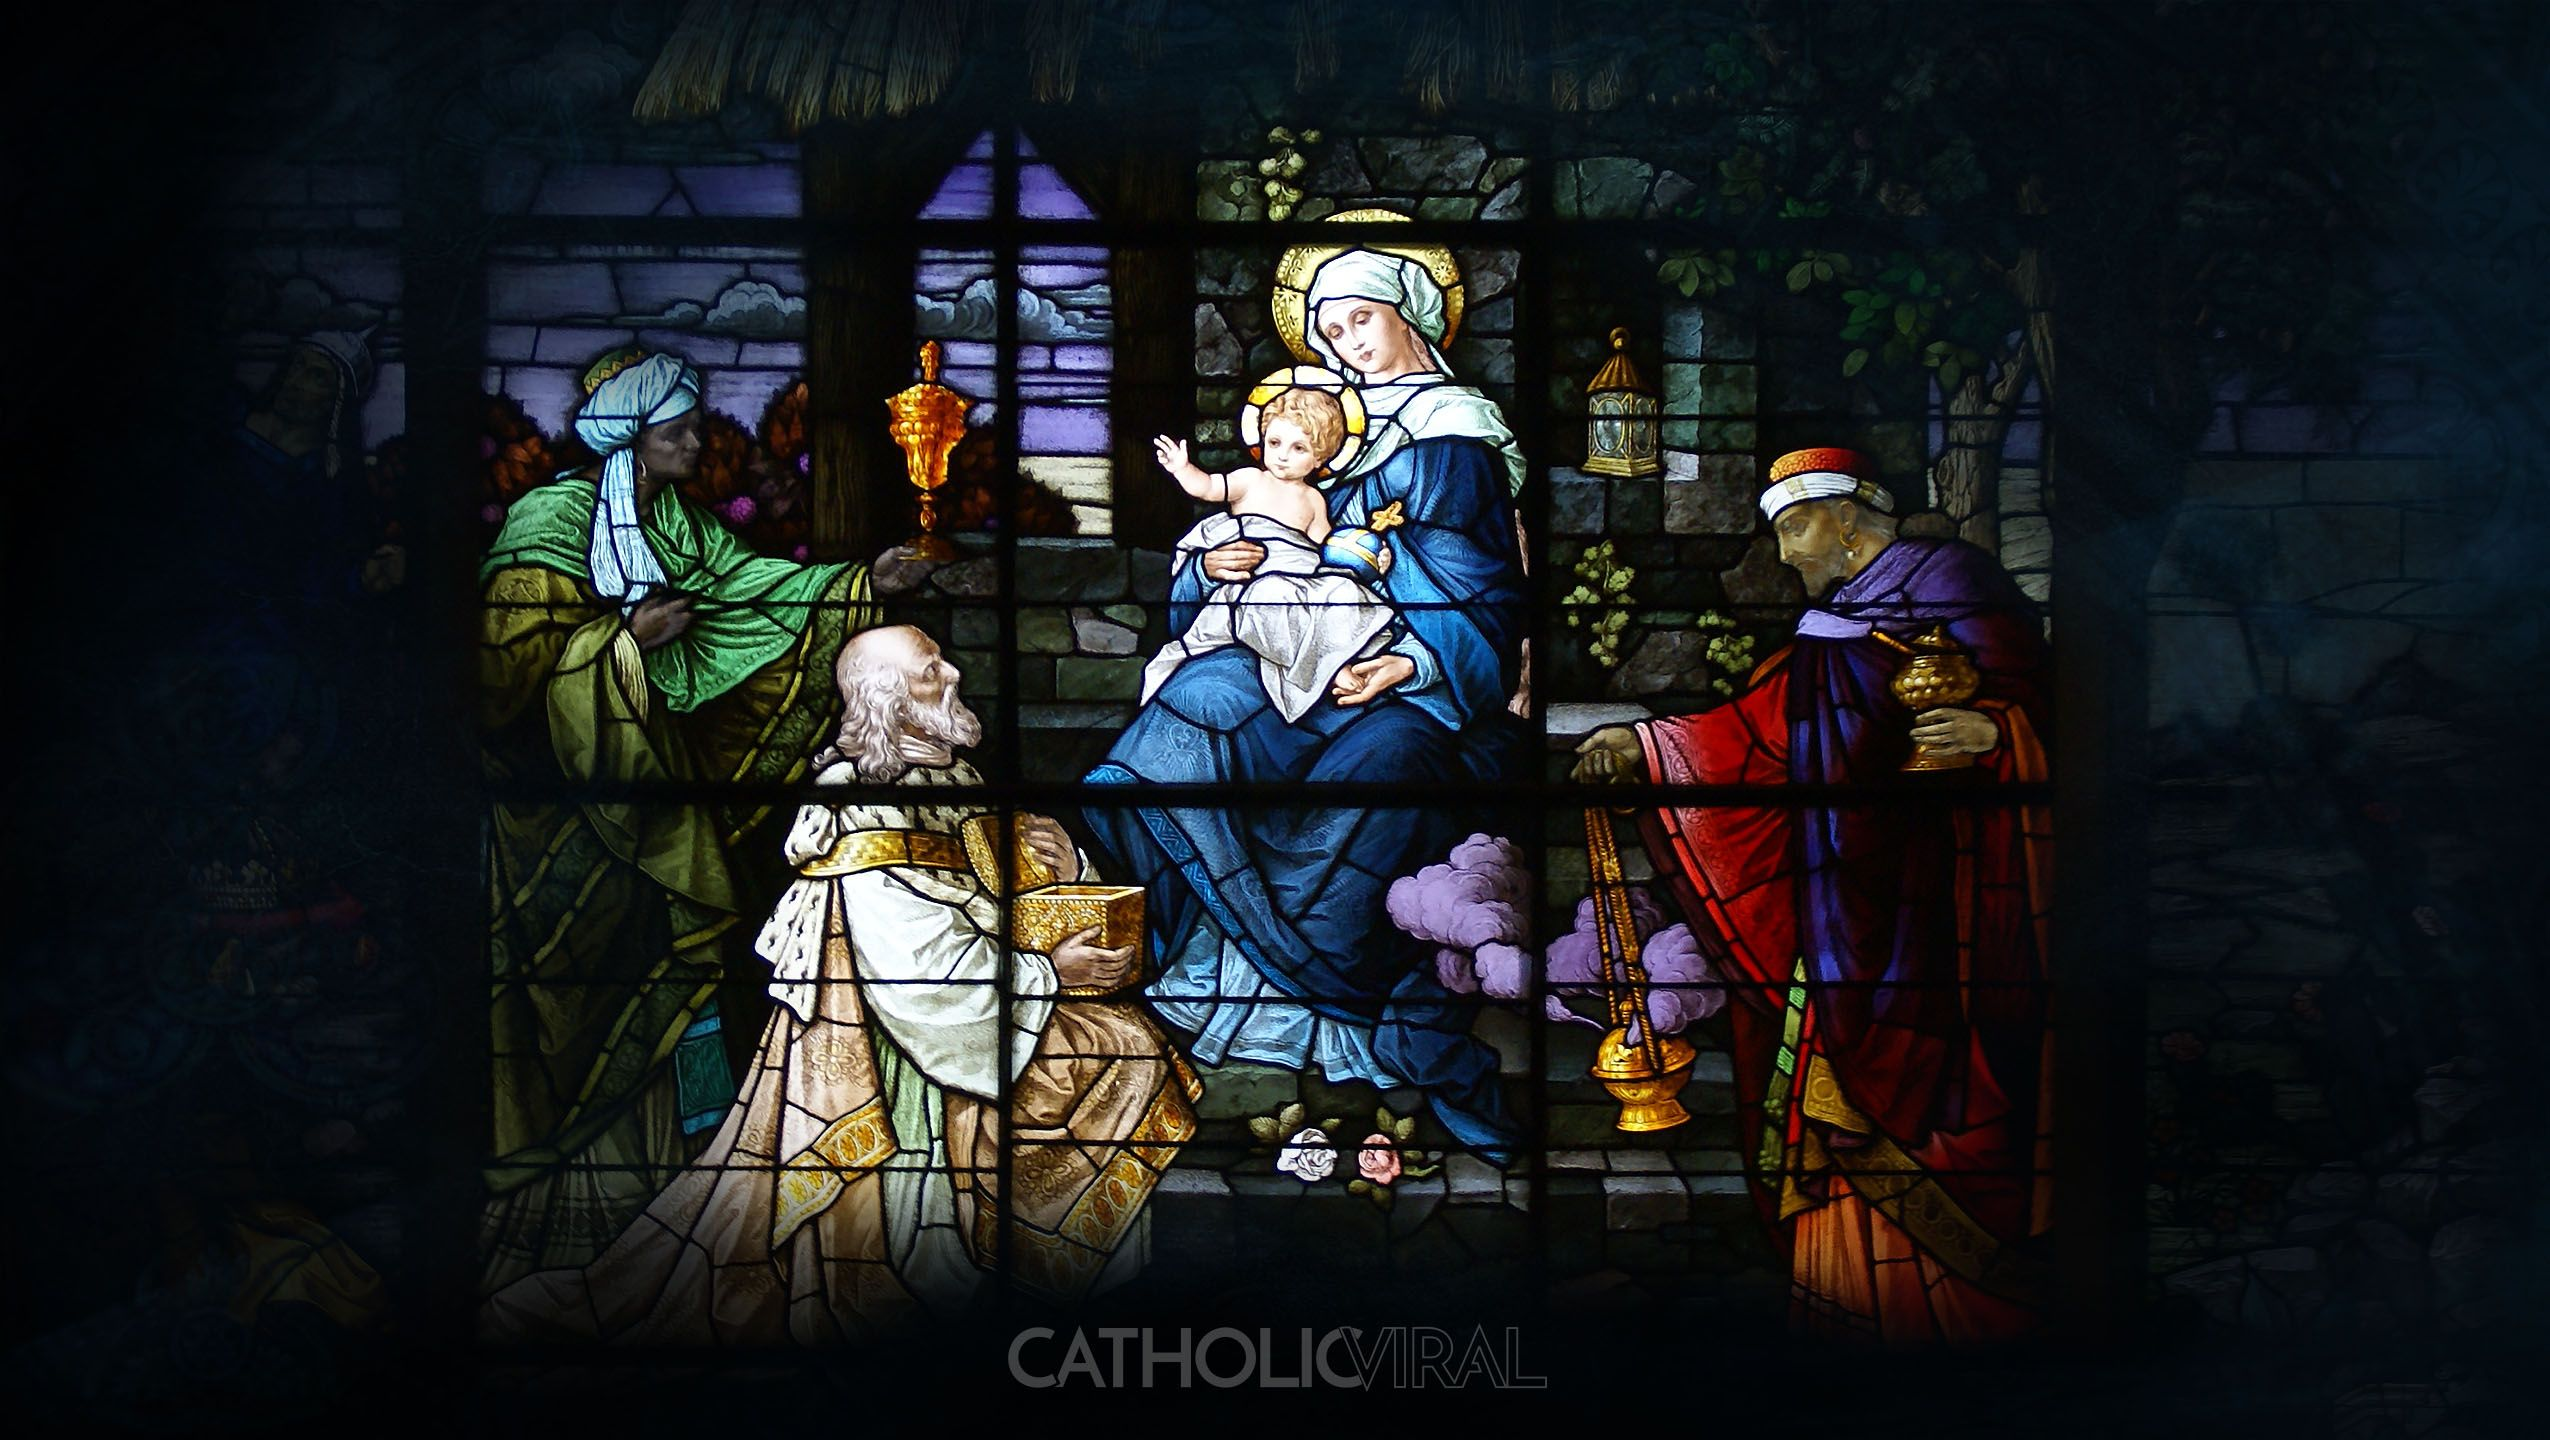 2550x1440 17 Stunning Stained-Glass Windows of the Nativity - HD Christmas ...